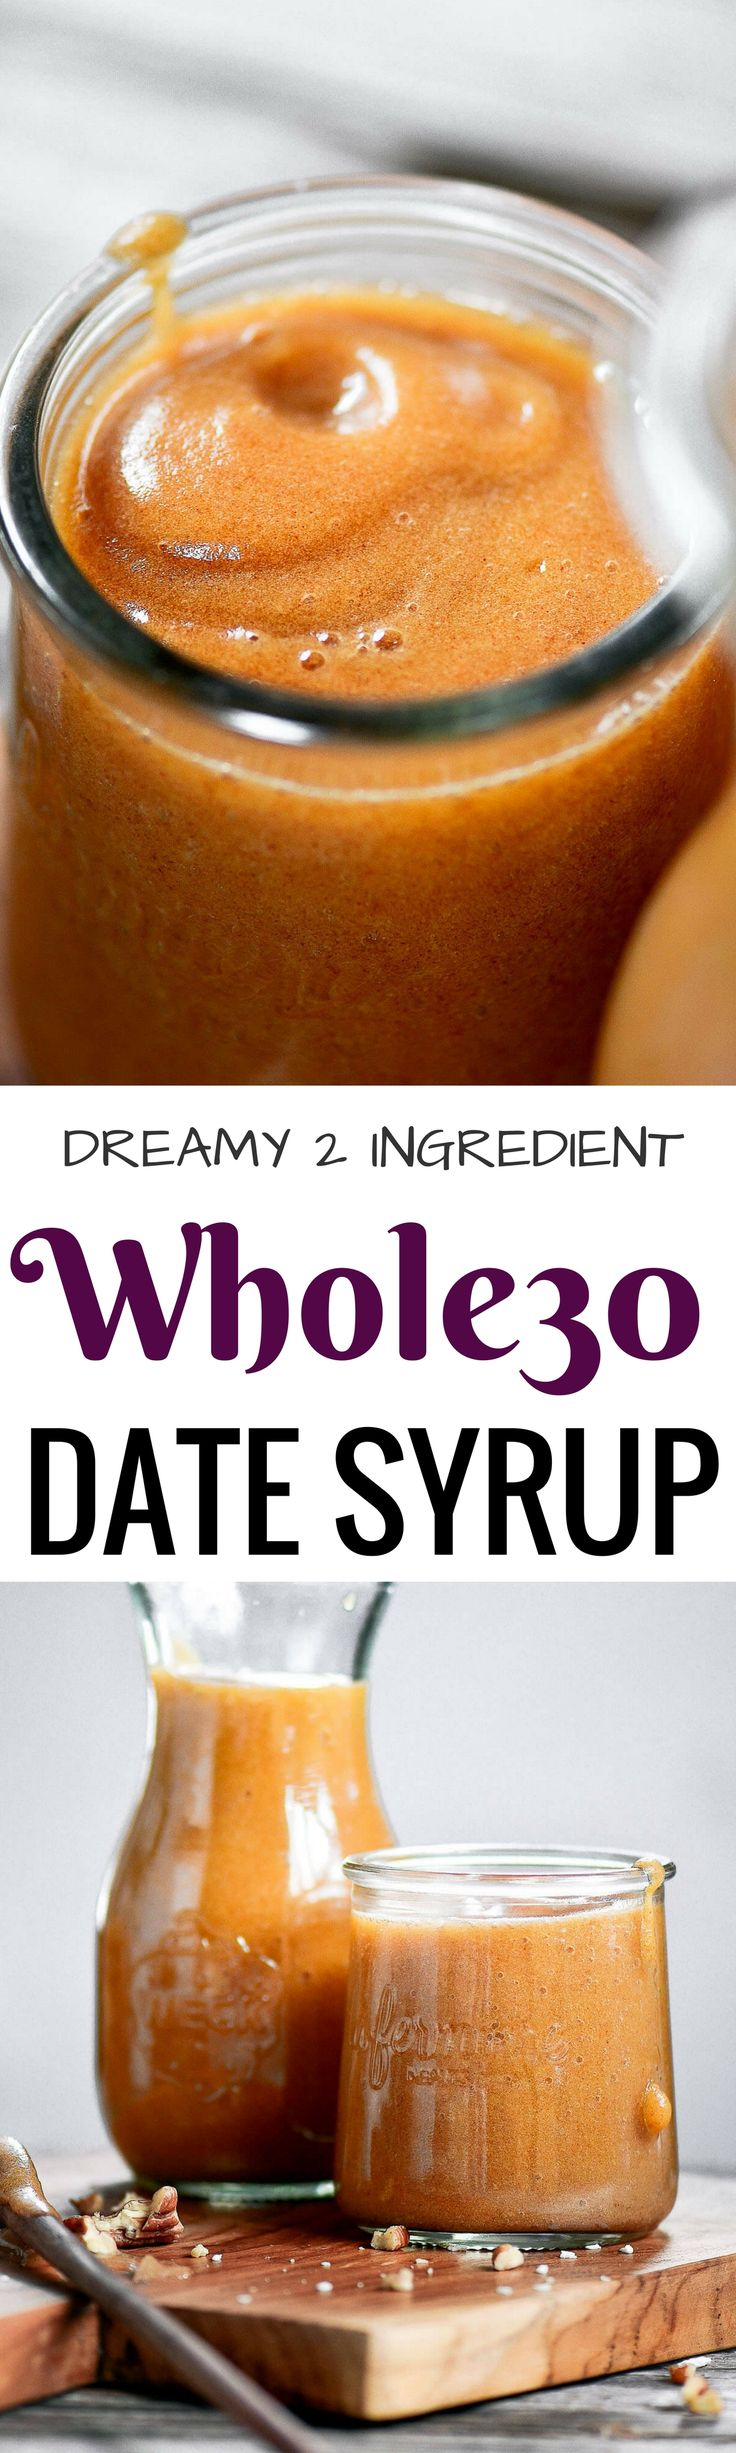 Dreamy 2 Ingredient Whole30 Date Syrup | Paleo Gluten Free Eats